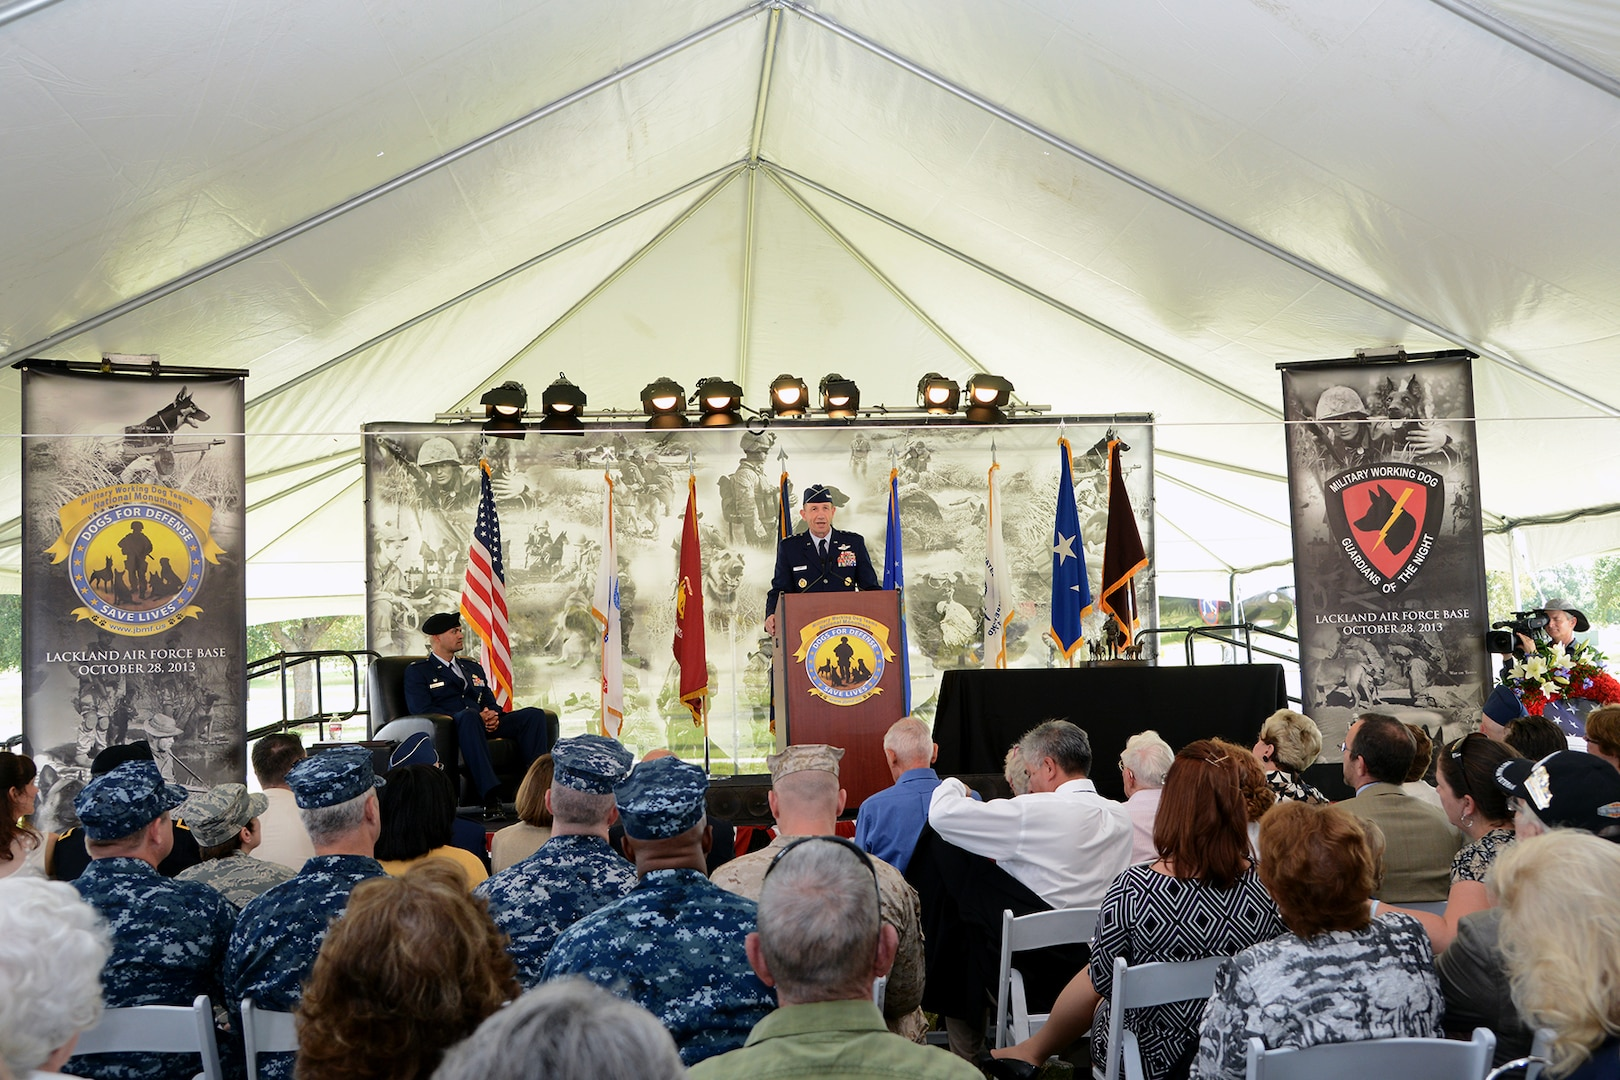 JOINT BASE SAN ANTONIO-LACKLAND, Texas --Lt. Gen. James Holmes Vice Commander, Air Education and Training Command, Joint Base San Antonio-Randolph, speaks at the U.S. Military Working Dog Teams National Monument dedication ceremony Oct. 28 at Joint Base San Antonio-Lackland. JBSA-Lackland is the home to the Department of Defense Military Working Dog Program and is where the U.S. Armed Forces has been training its military working dog teams since 1958. It is the world's largest training center for military dogs and handlers and is also home to the largest veterinary hospital for military working dogs.(U.S. Air Force photo by Ben Faske)